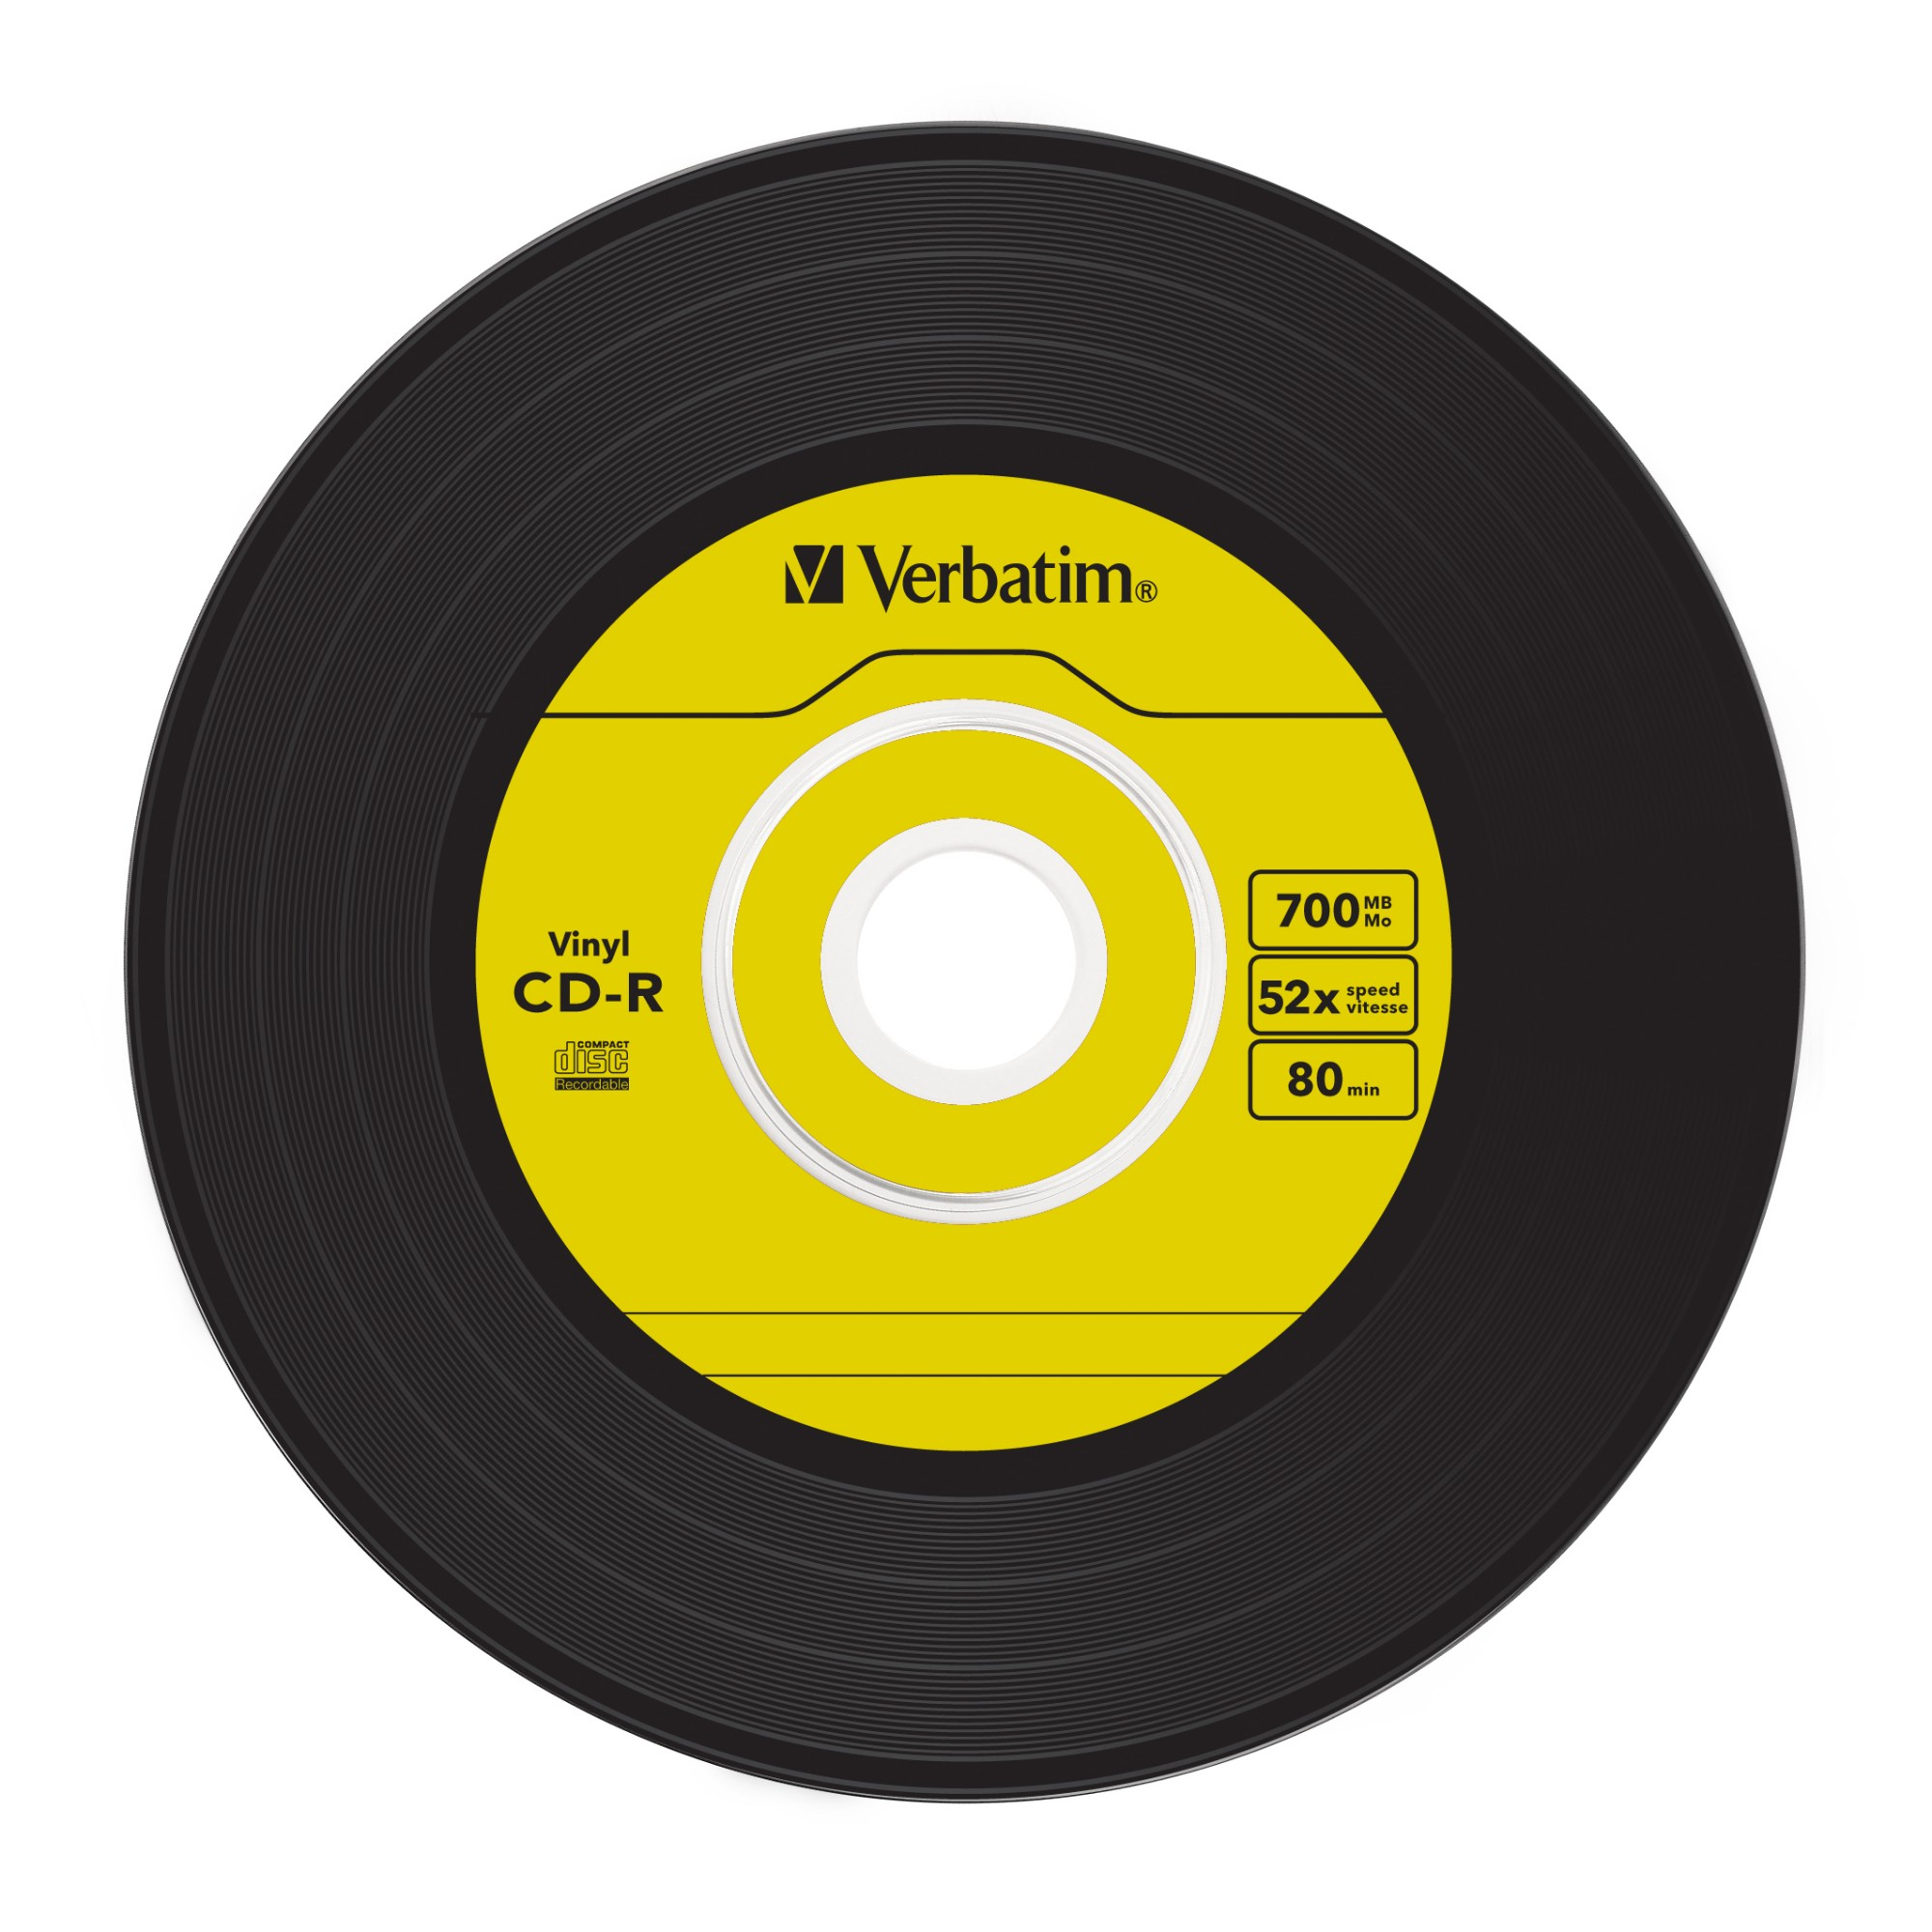 Verbatim CD-R AZO Data Vinyl 700 MB 10 pc(s)